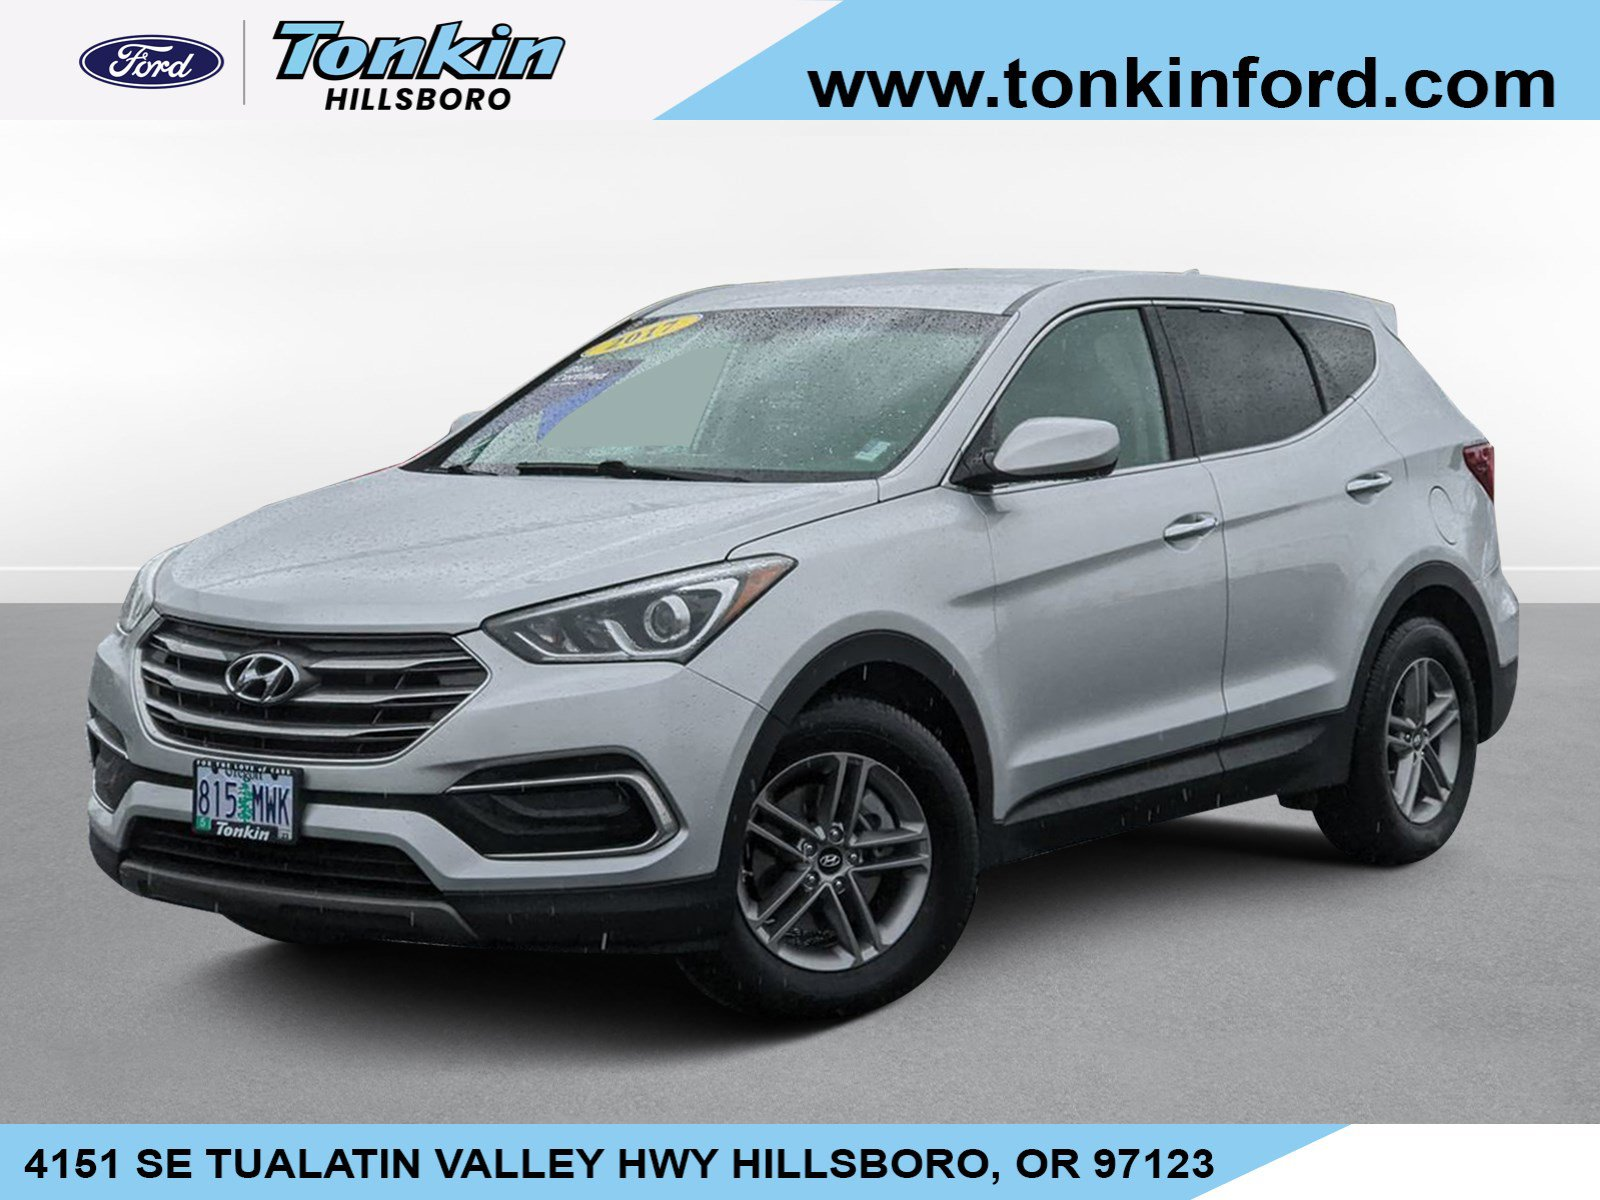 2017 Hyundai Santa Fe photo